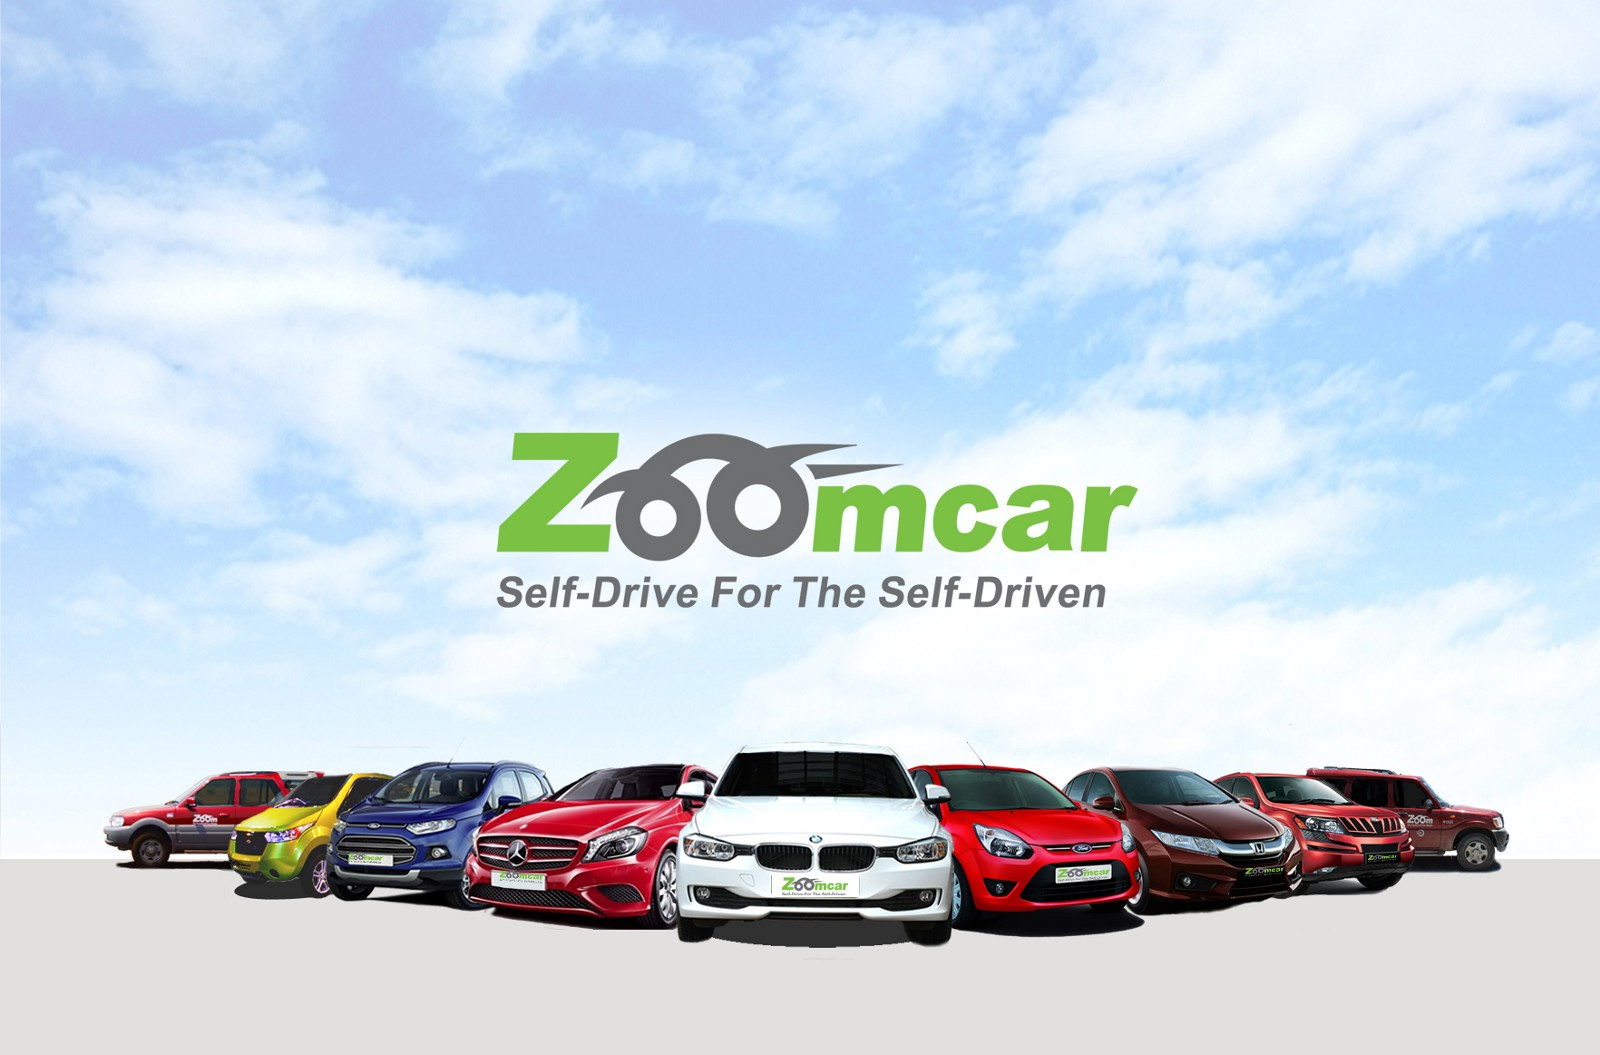 zoomcar revises its policy on vehicle damage fee l arome